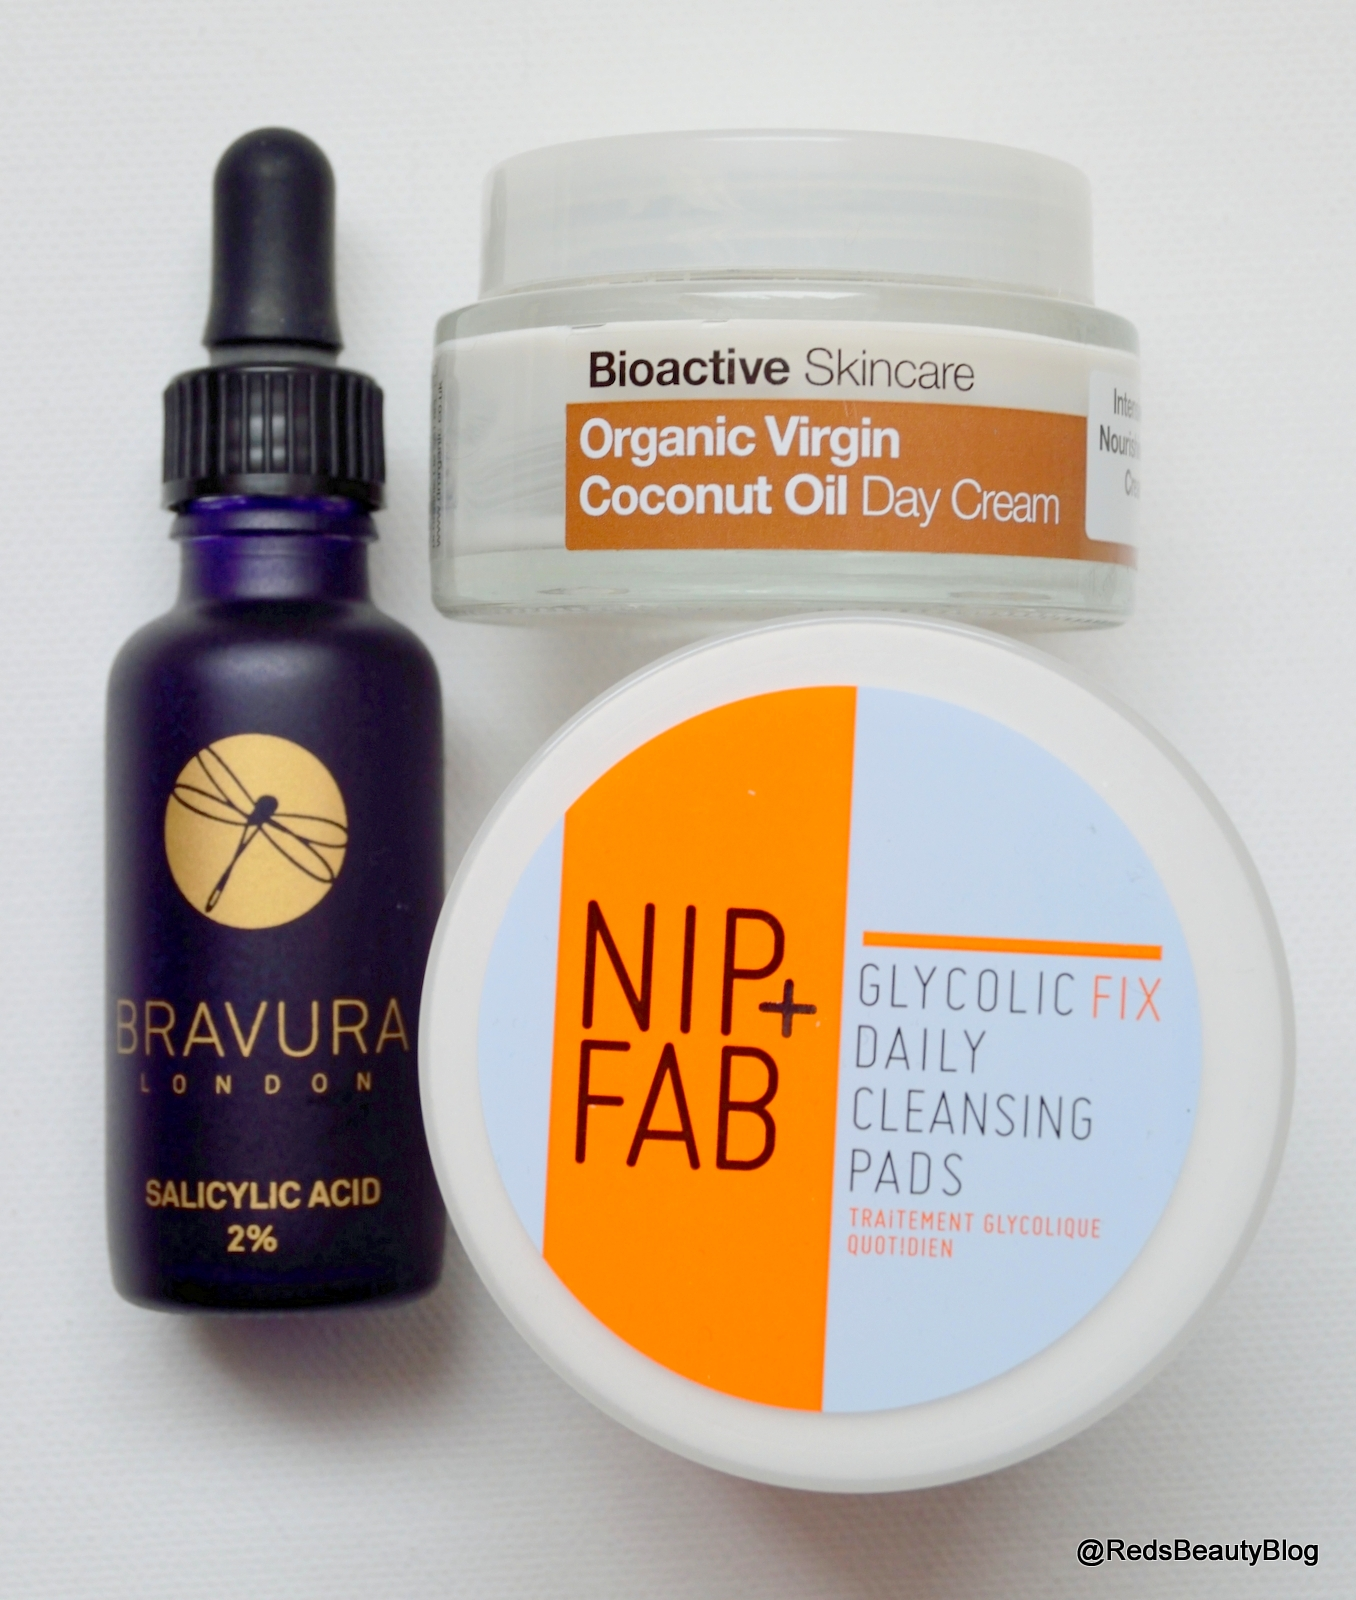 Picture of Bravura London Salicylic Acid, Nip & Fab Glycolic Pads and Dr Organic Coconut Day Cream